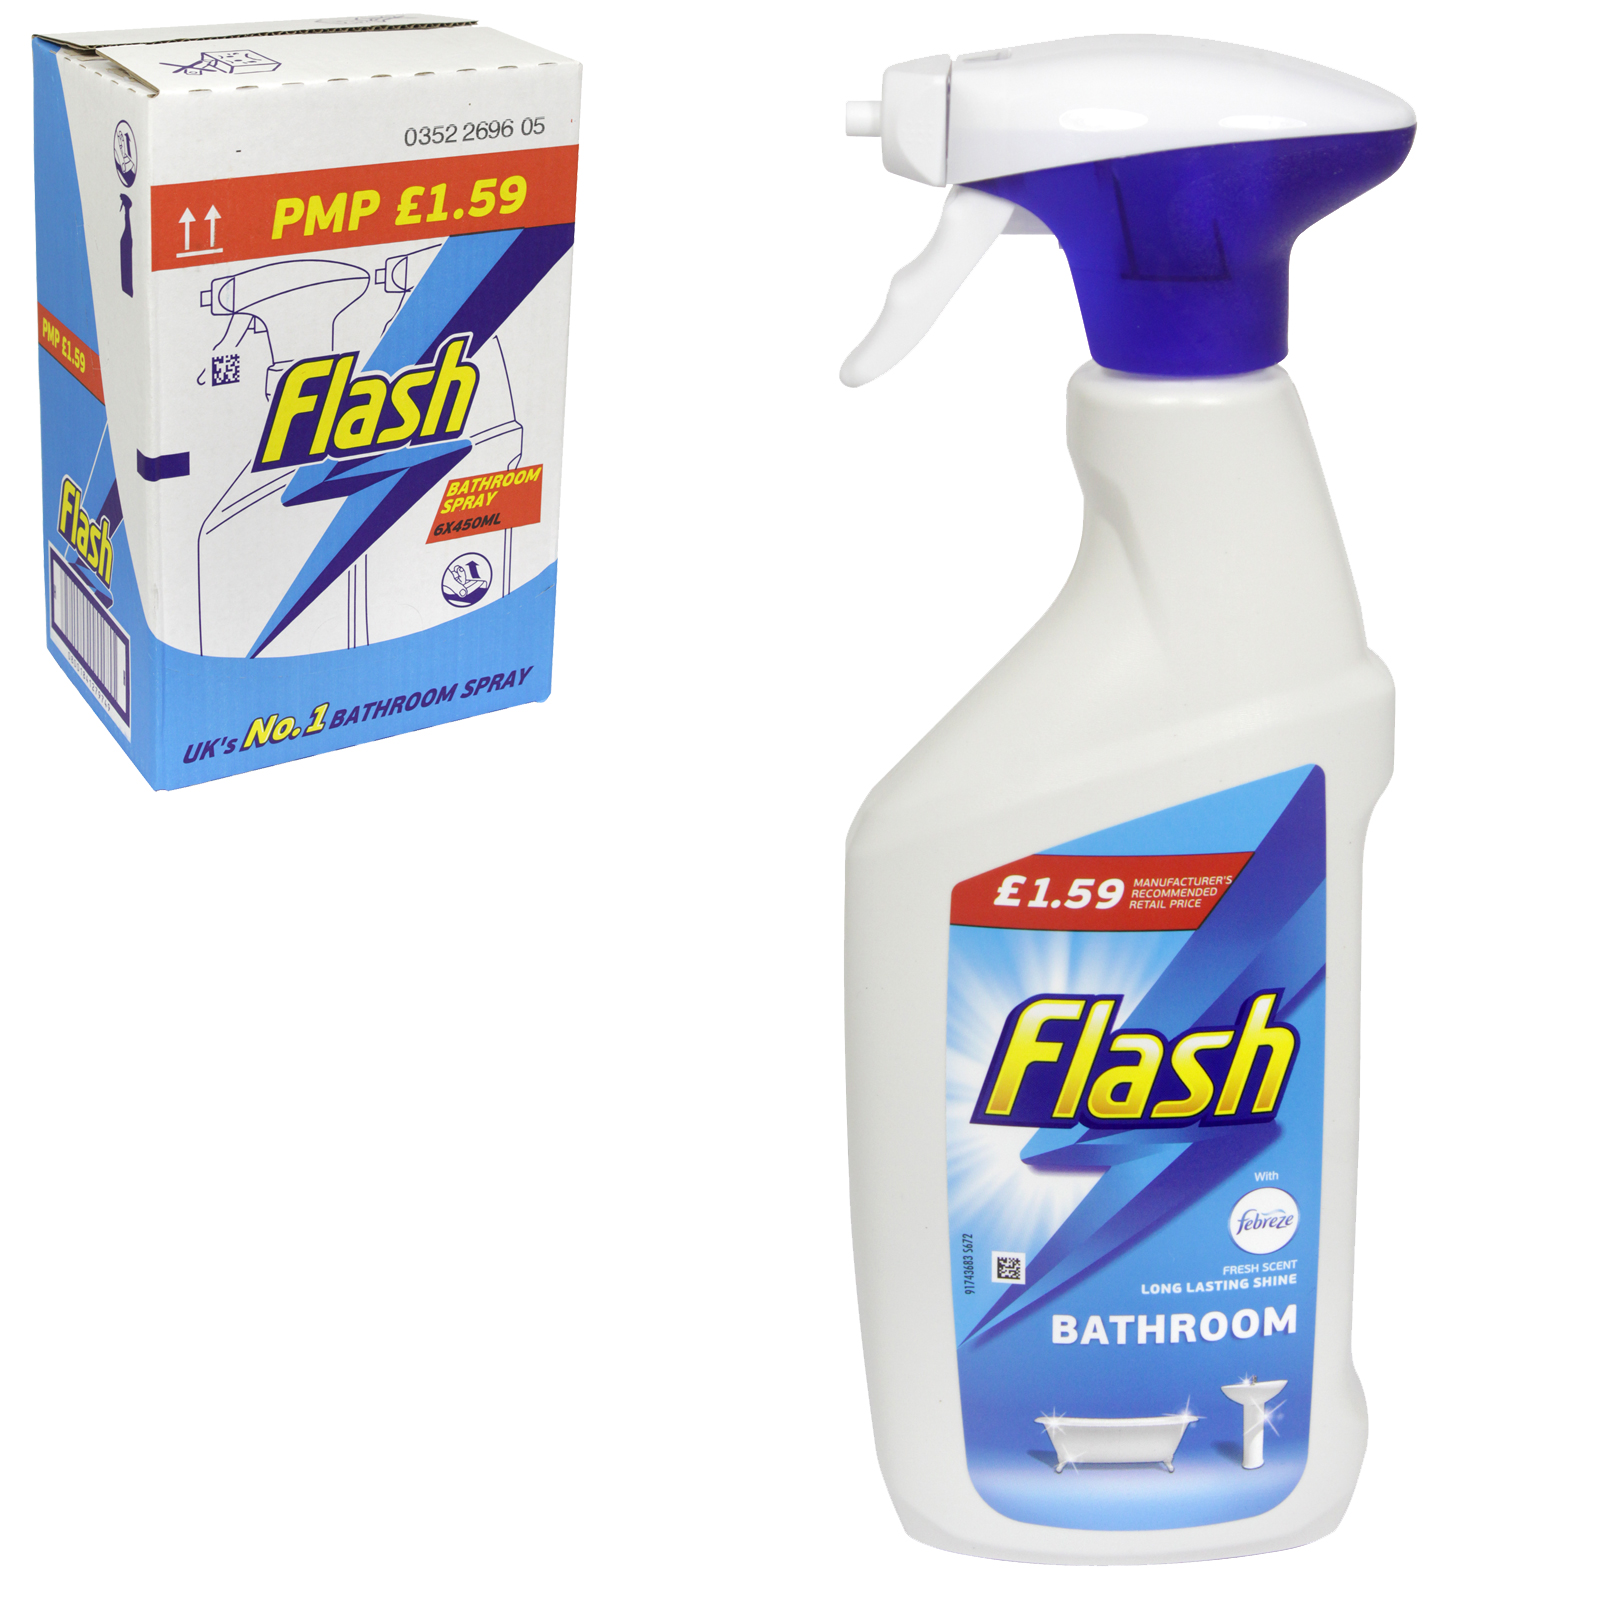 FLASH SPRAY 500ML BATHROOM PM ?1.99 X6